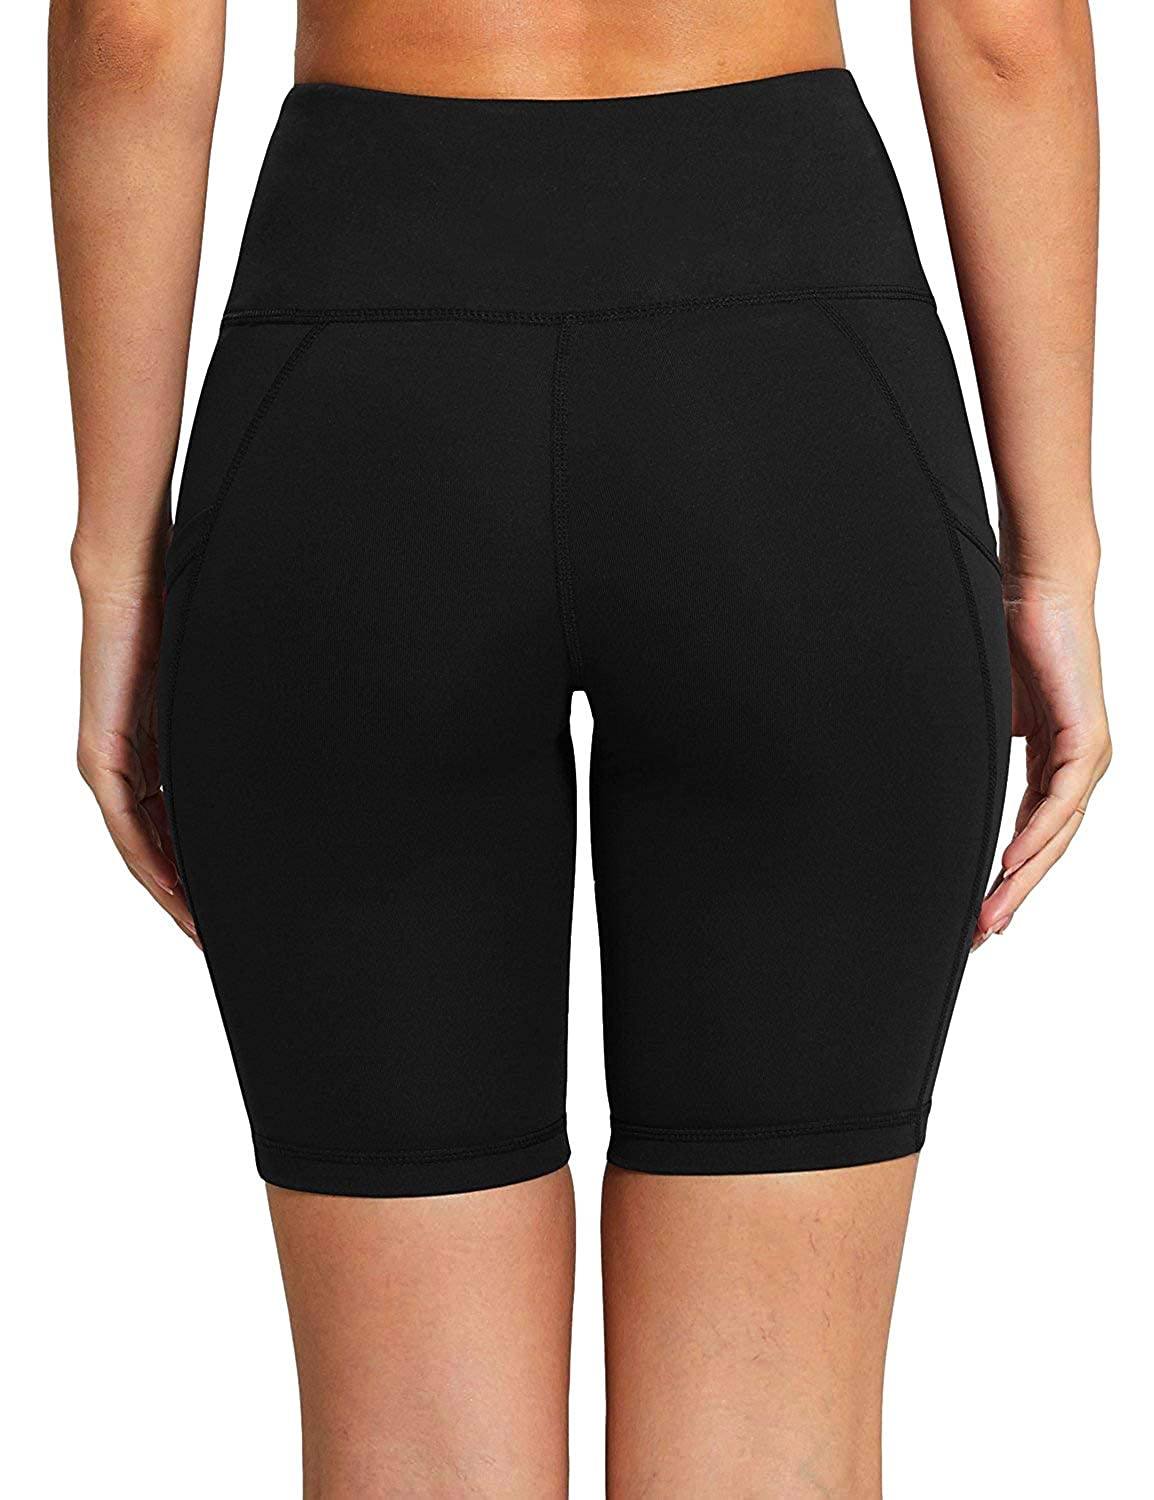 N1Fit Exercise Shorts for Women Bike Shorts Women Non See-Through Yoga Shorts